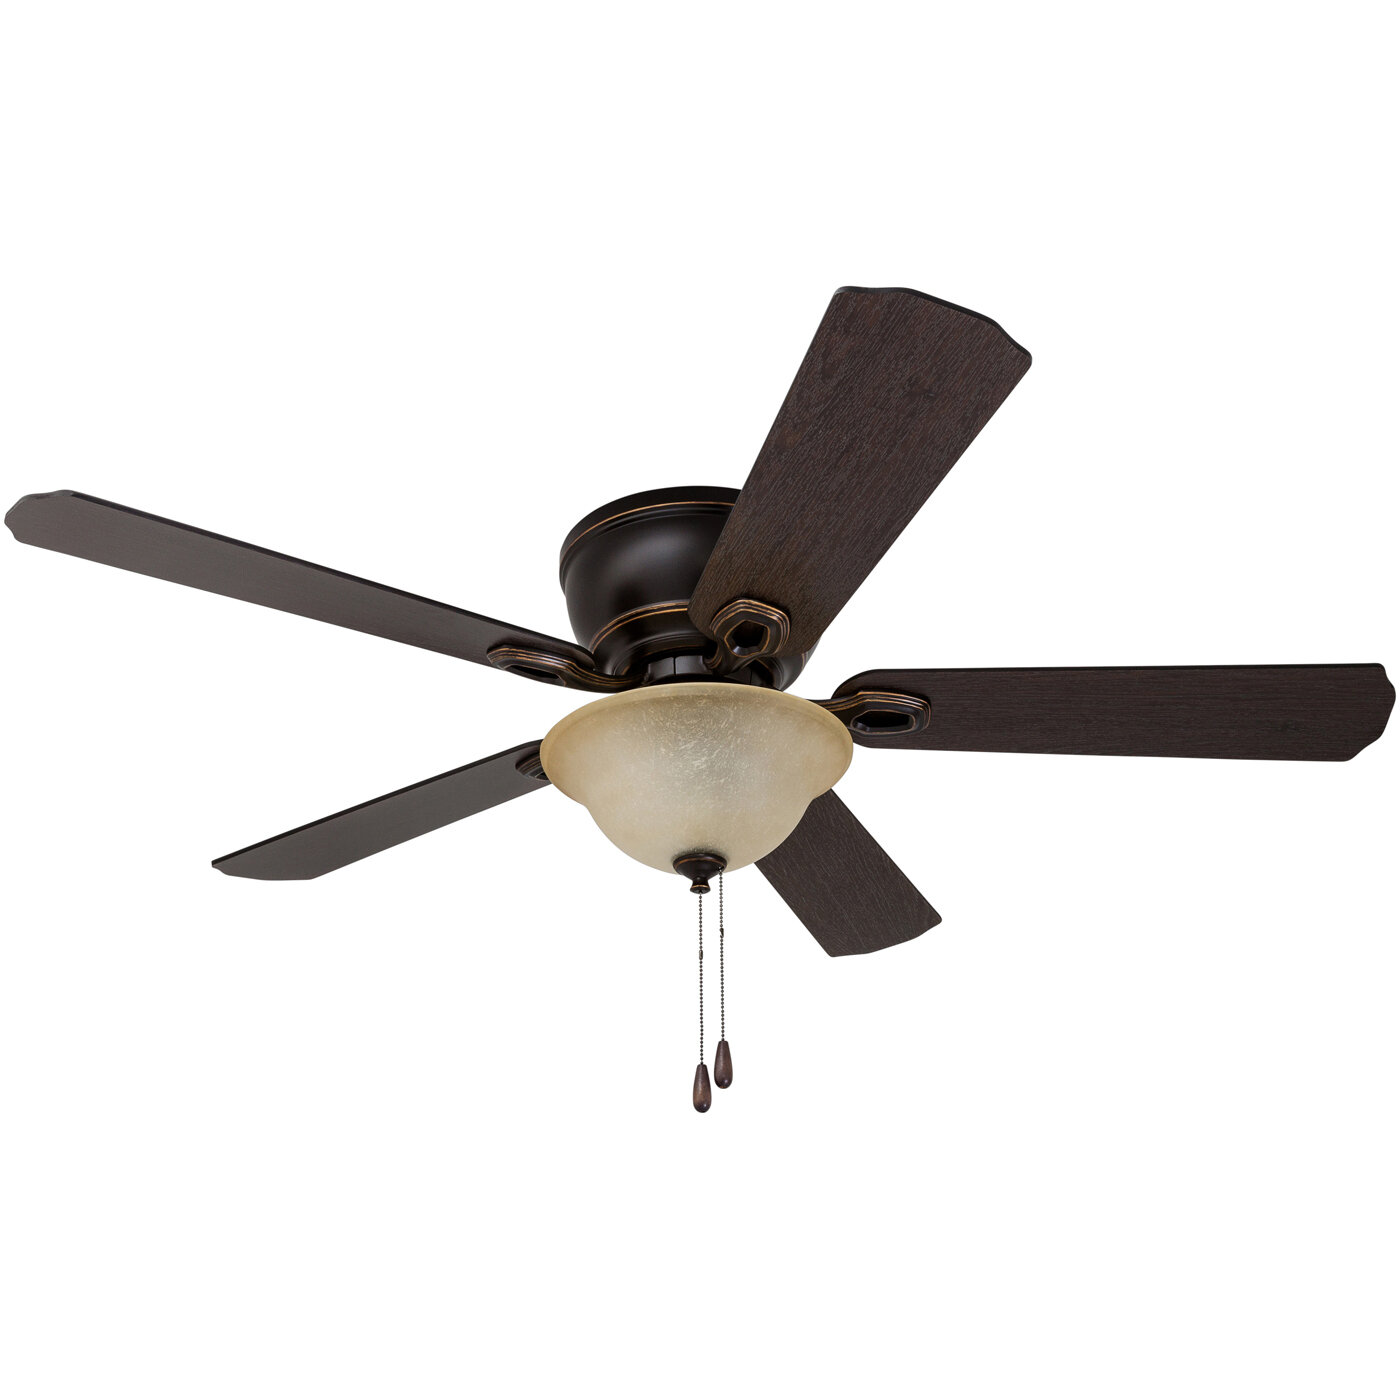 single fan reviews review industrial ceilings westinghouse light blade with ceiling